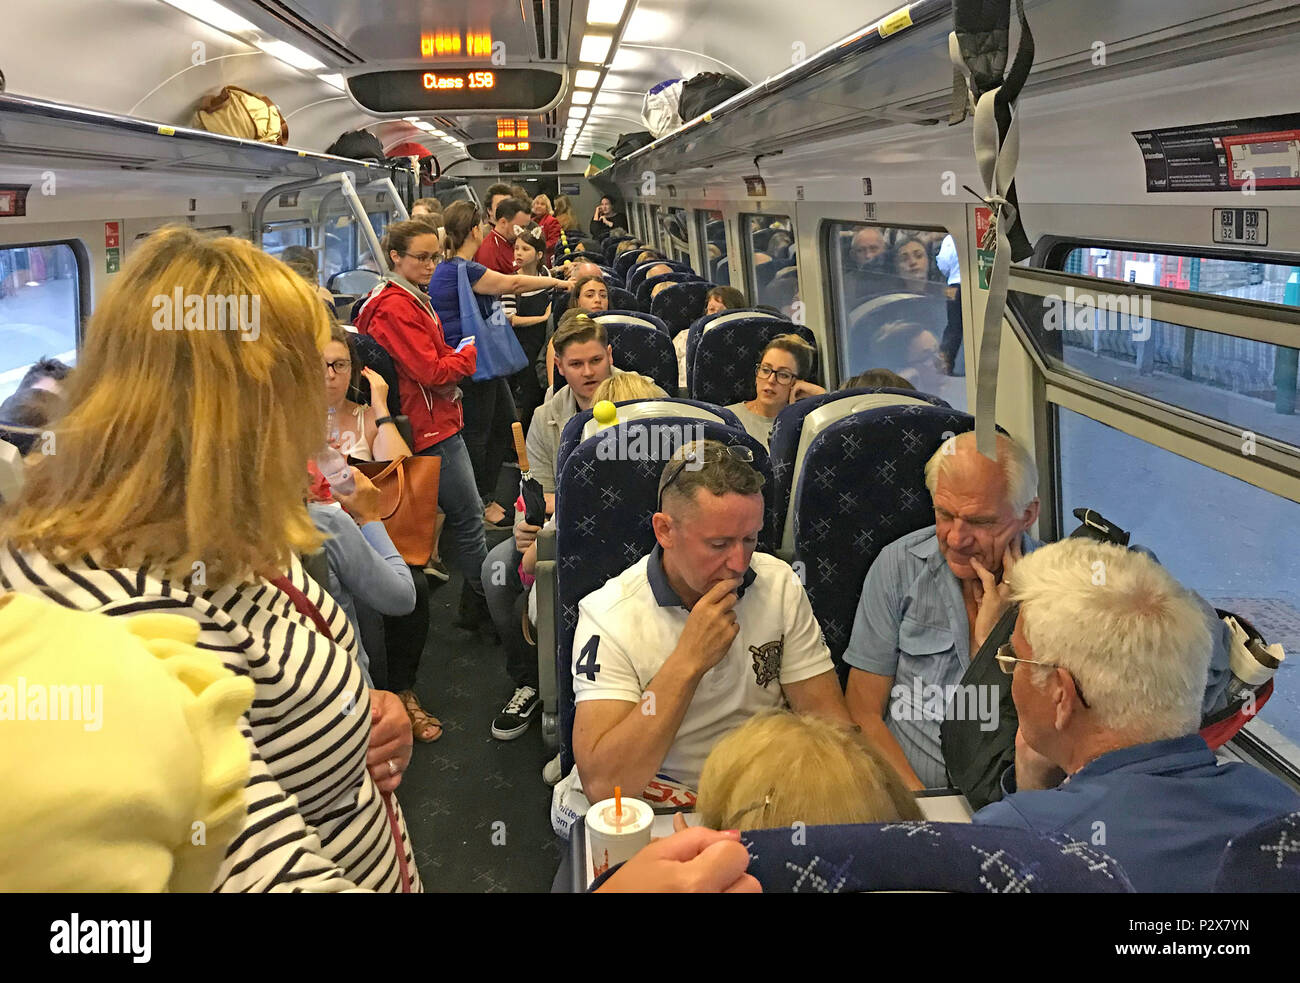 GoTonySmith,@HotpixUK,Scotland,Railway,passengers,TOC,Class158,Waverley Route,Waverley,Busy,rail,Class 158,interior,reopened,single track,problems,Borders Rail,Abellio,Border Counties Railway,Scottish Borders,journey,time,Galashiels,public,transport,fund,integrated transport,late,delay,delayed,packed,packed trains,passenger,services,project,Eskbank,Season Ticket,Scotrail season ticket,crowded,crowded train